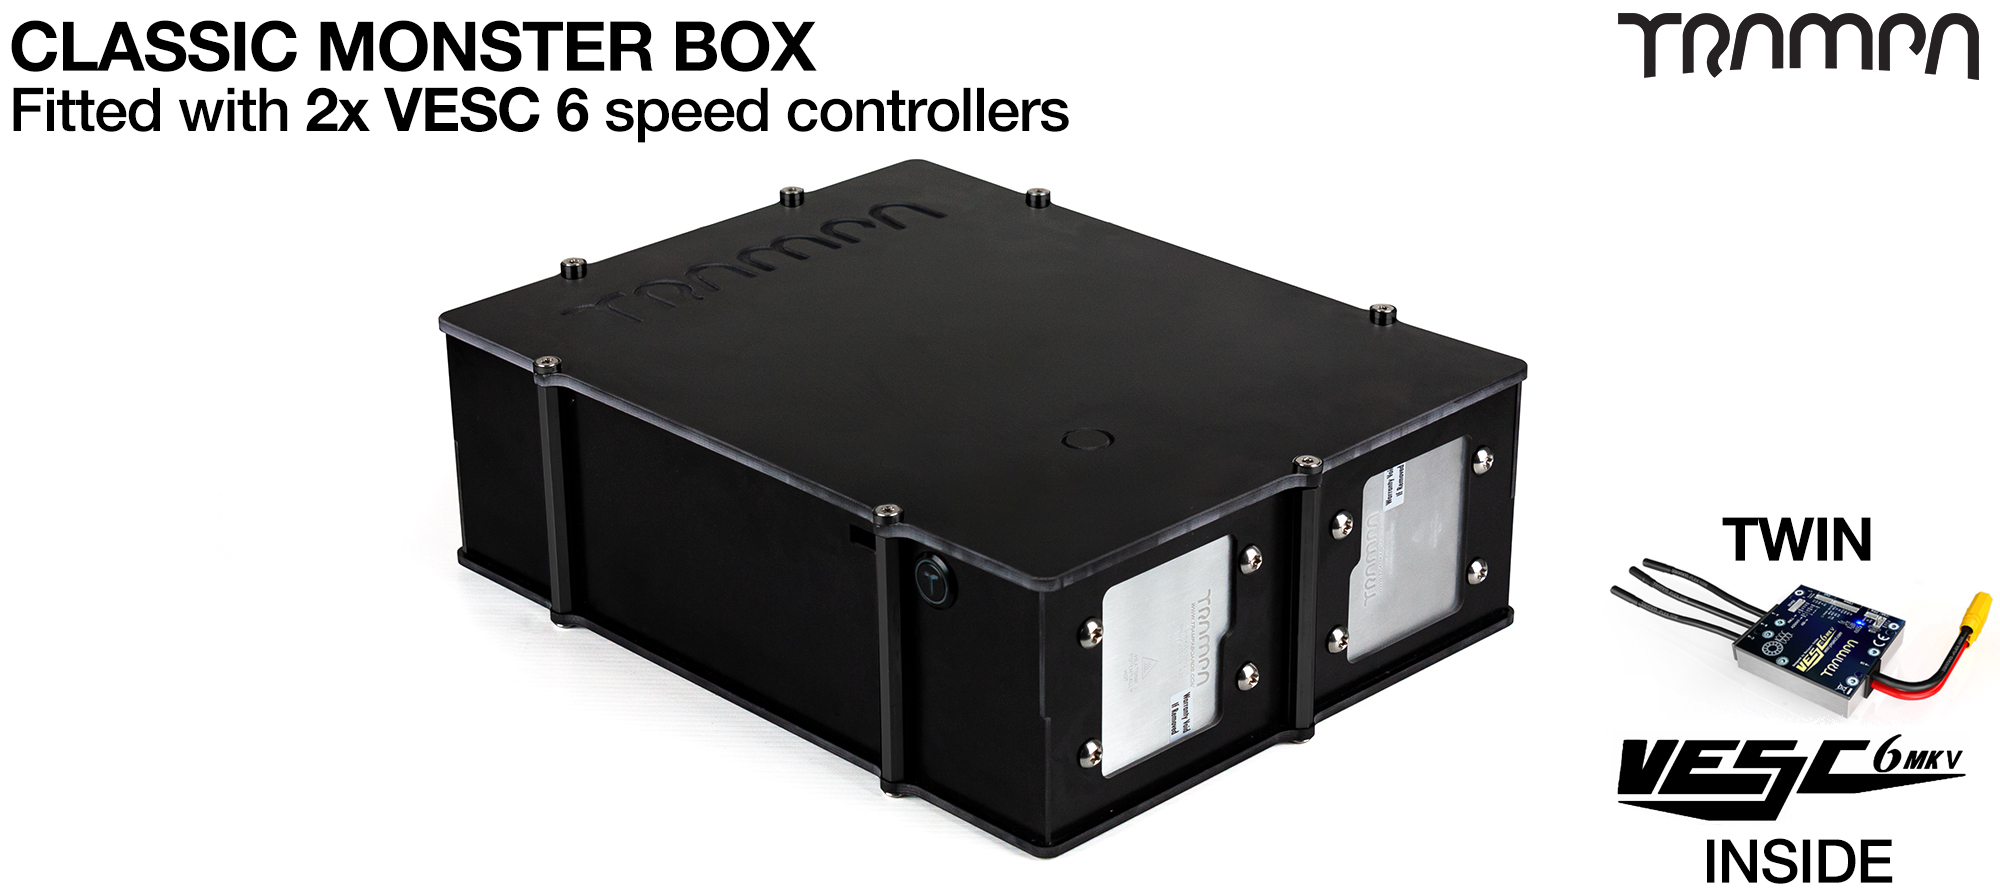 MASSIVE MONSTER Box with 2x VESC 6 & 21700 Cell pack - No Cells (+£300)